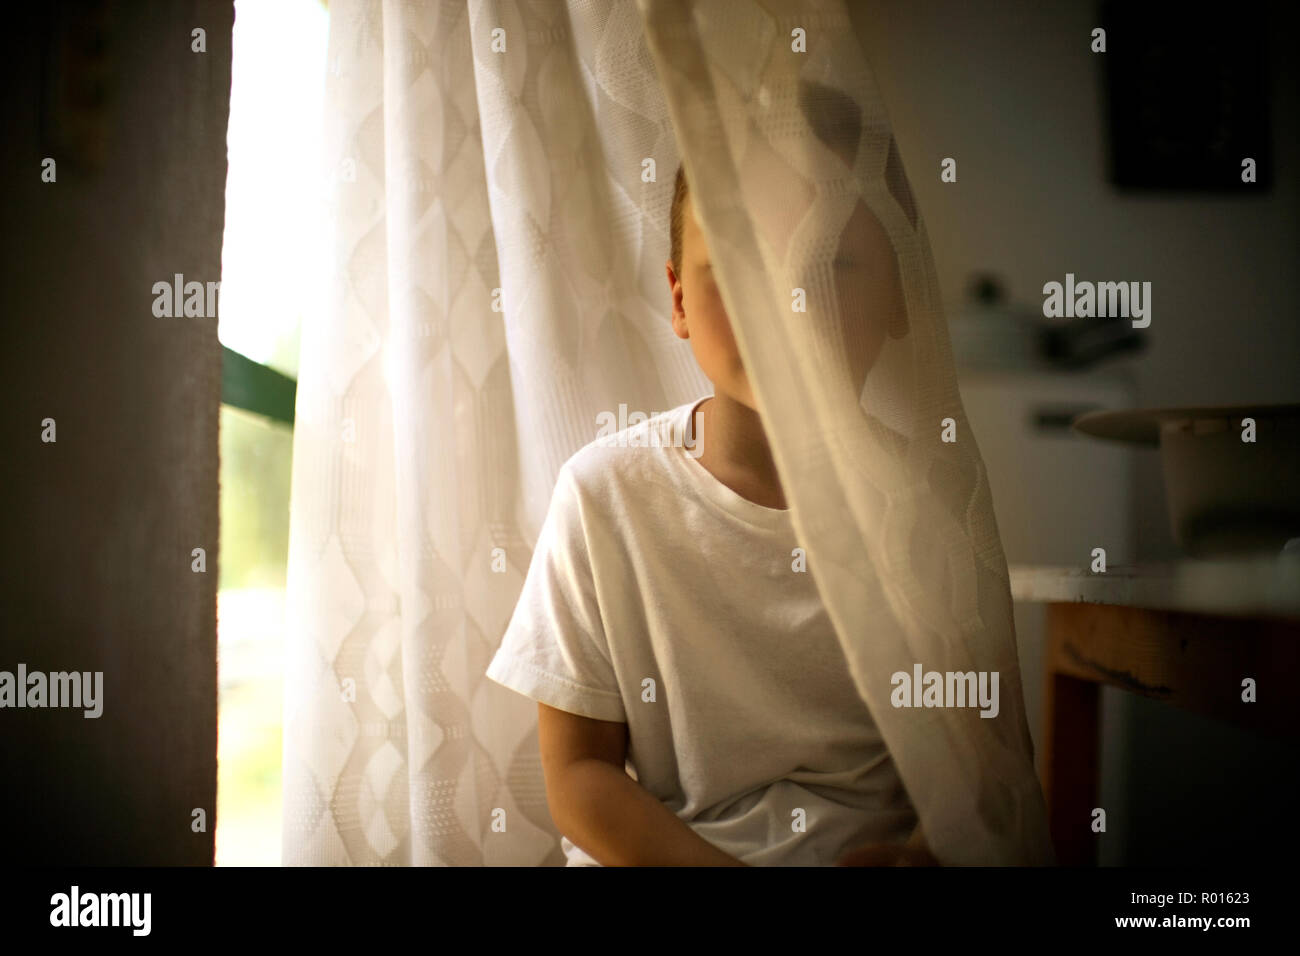 View of a small boy hiding behind a curtain. - Stock Image